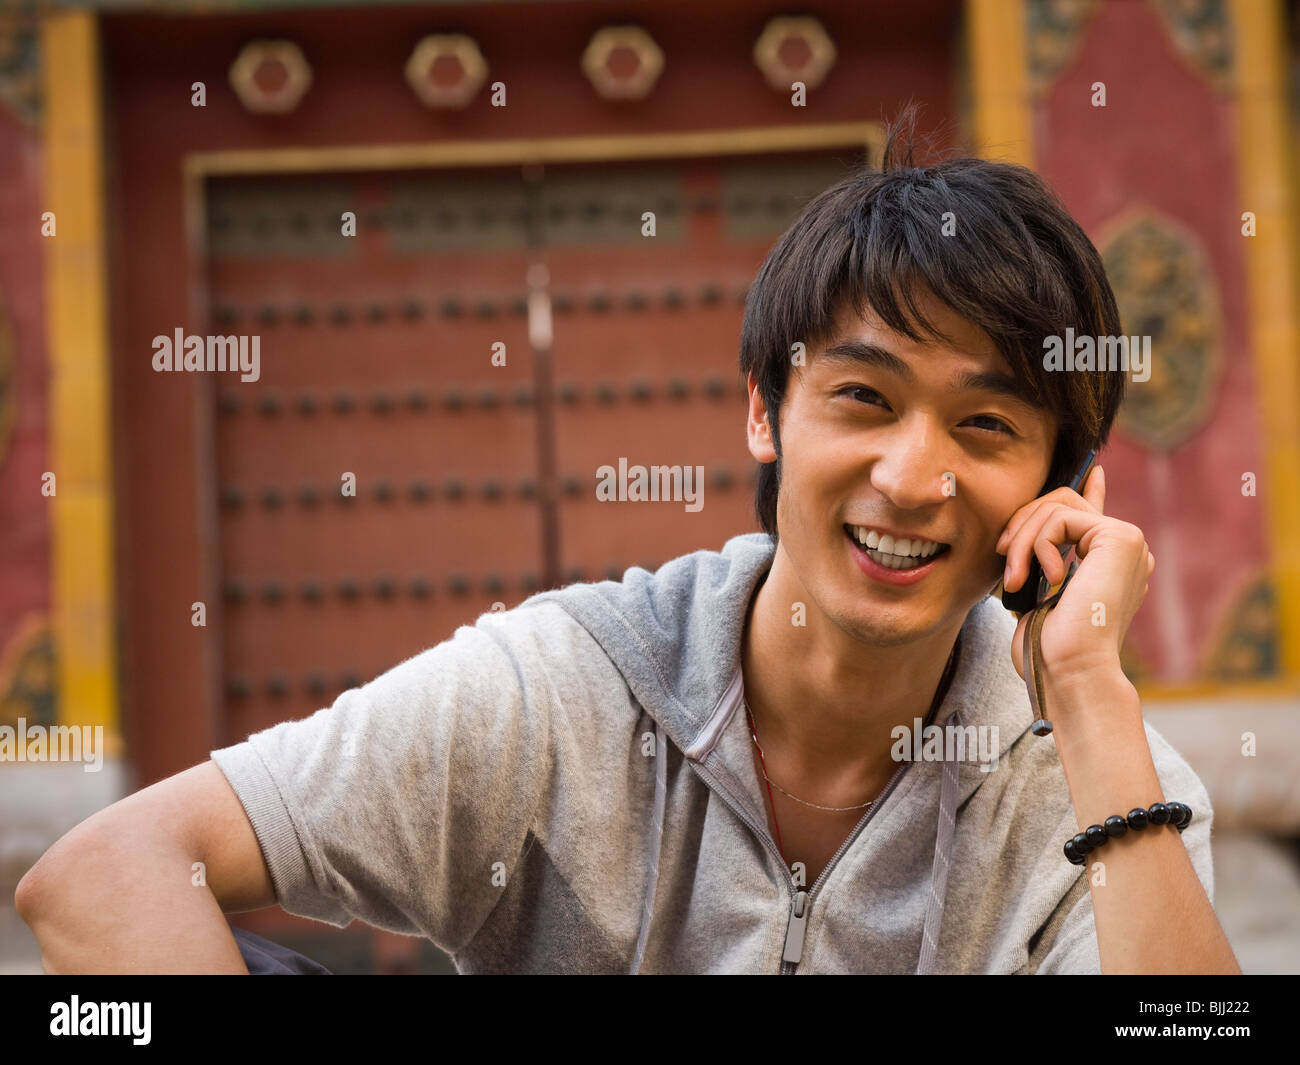 Teenage boy outdoors with cell phone smiling - Stock Image